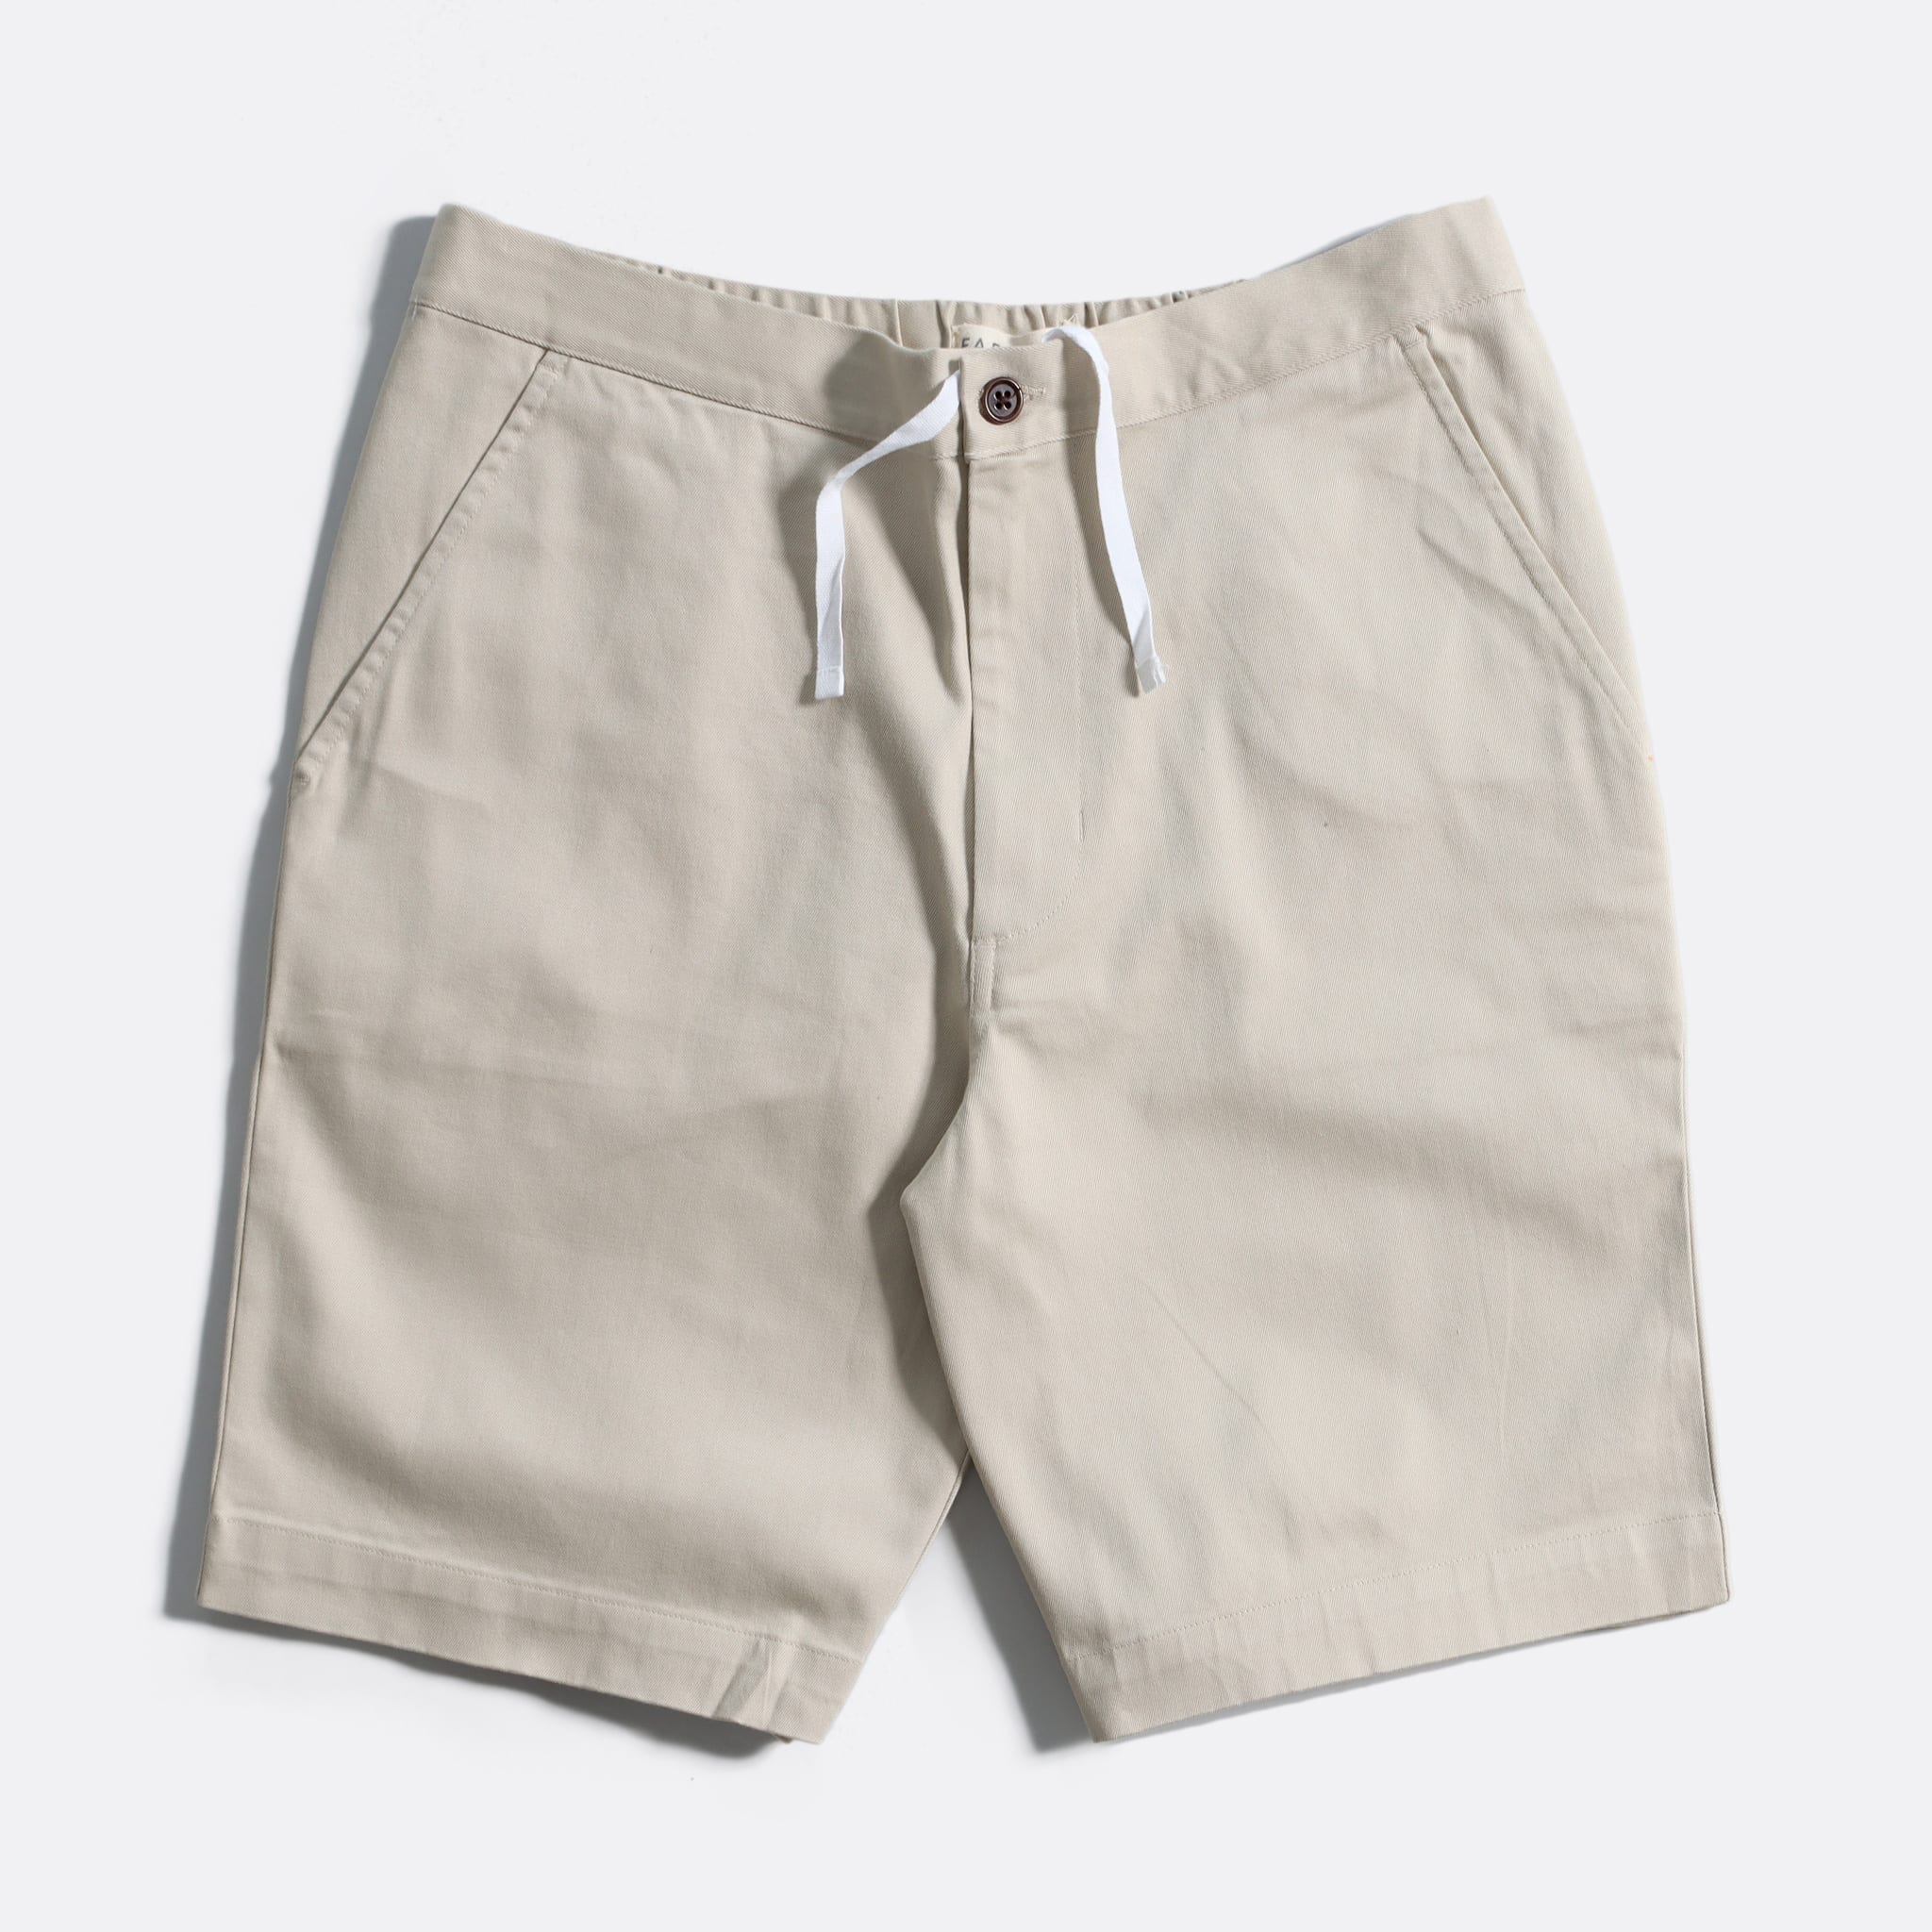 Far Afield Drawstring Shorts a Pumice Stone Organic Cotton Twill FabricCasual Basics